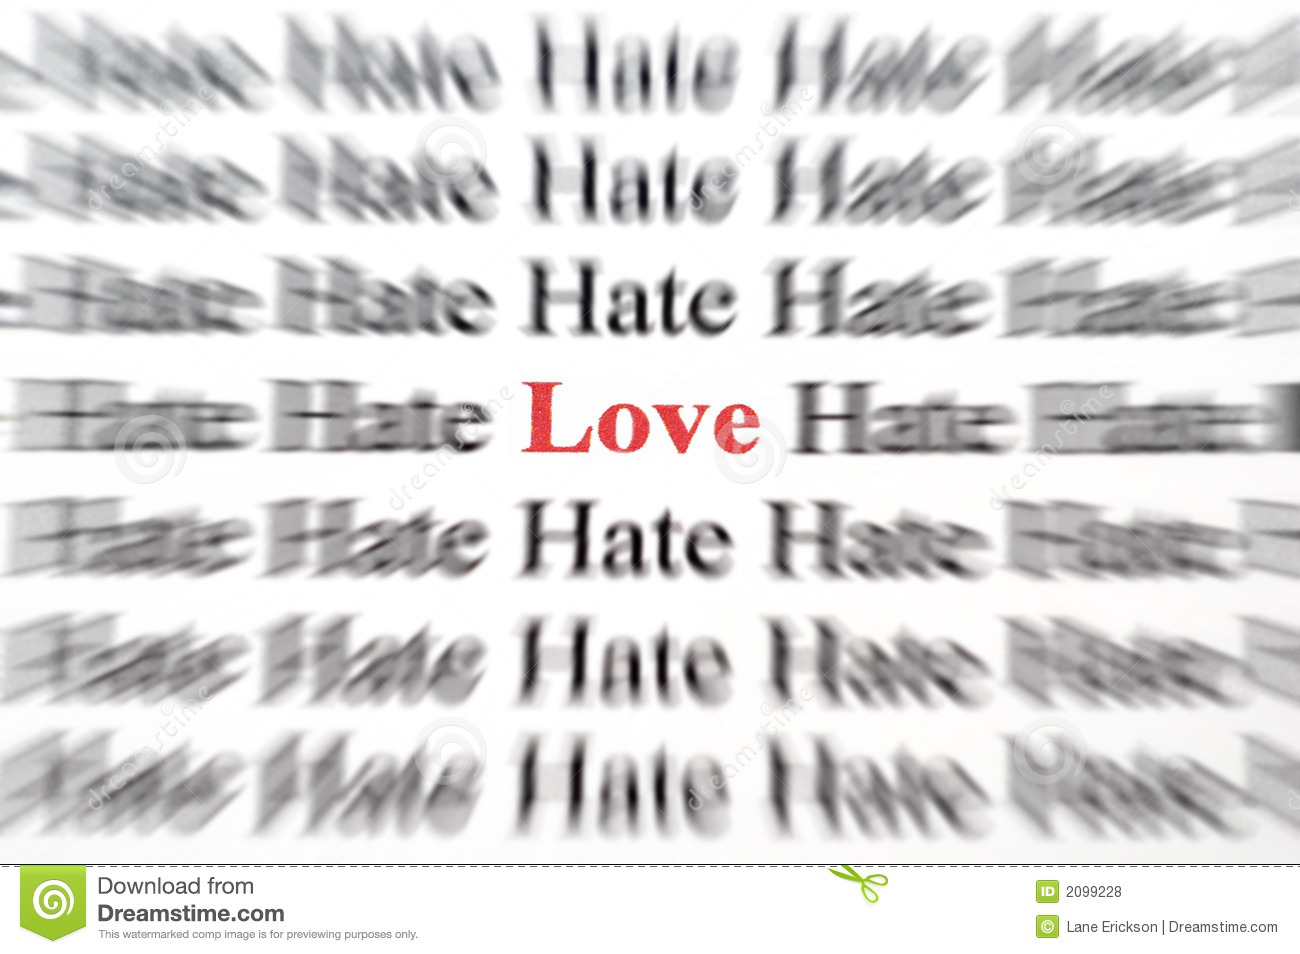 I hate love photos free download